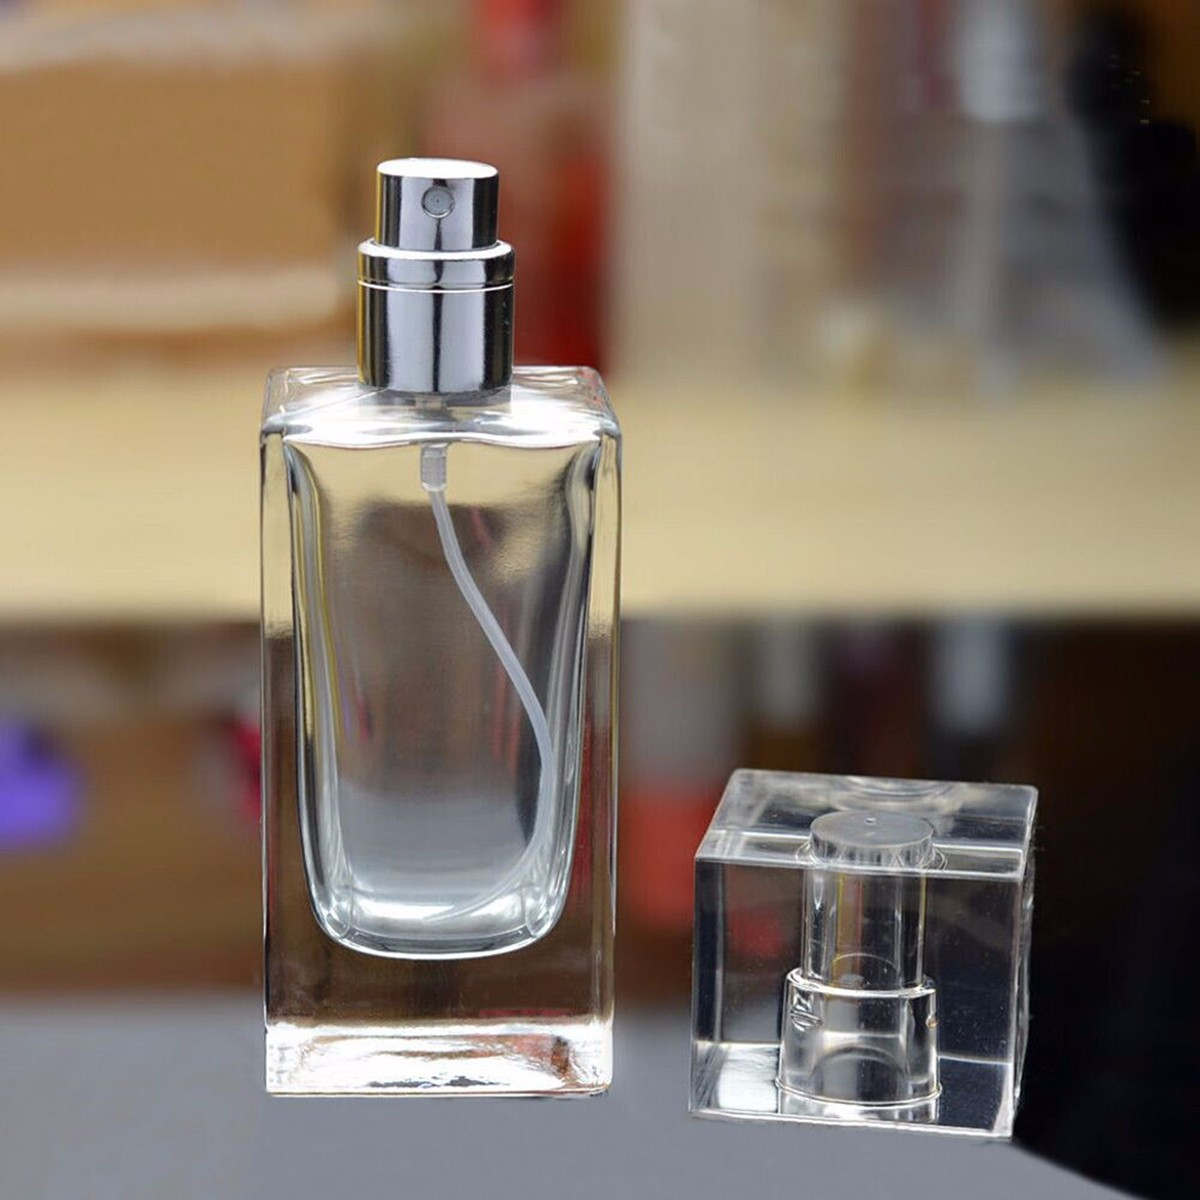 Refillable Empty Perfume Spray Container Bottle Glass Fragrance Aroma Atomizer Travel 50ml